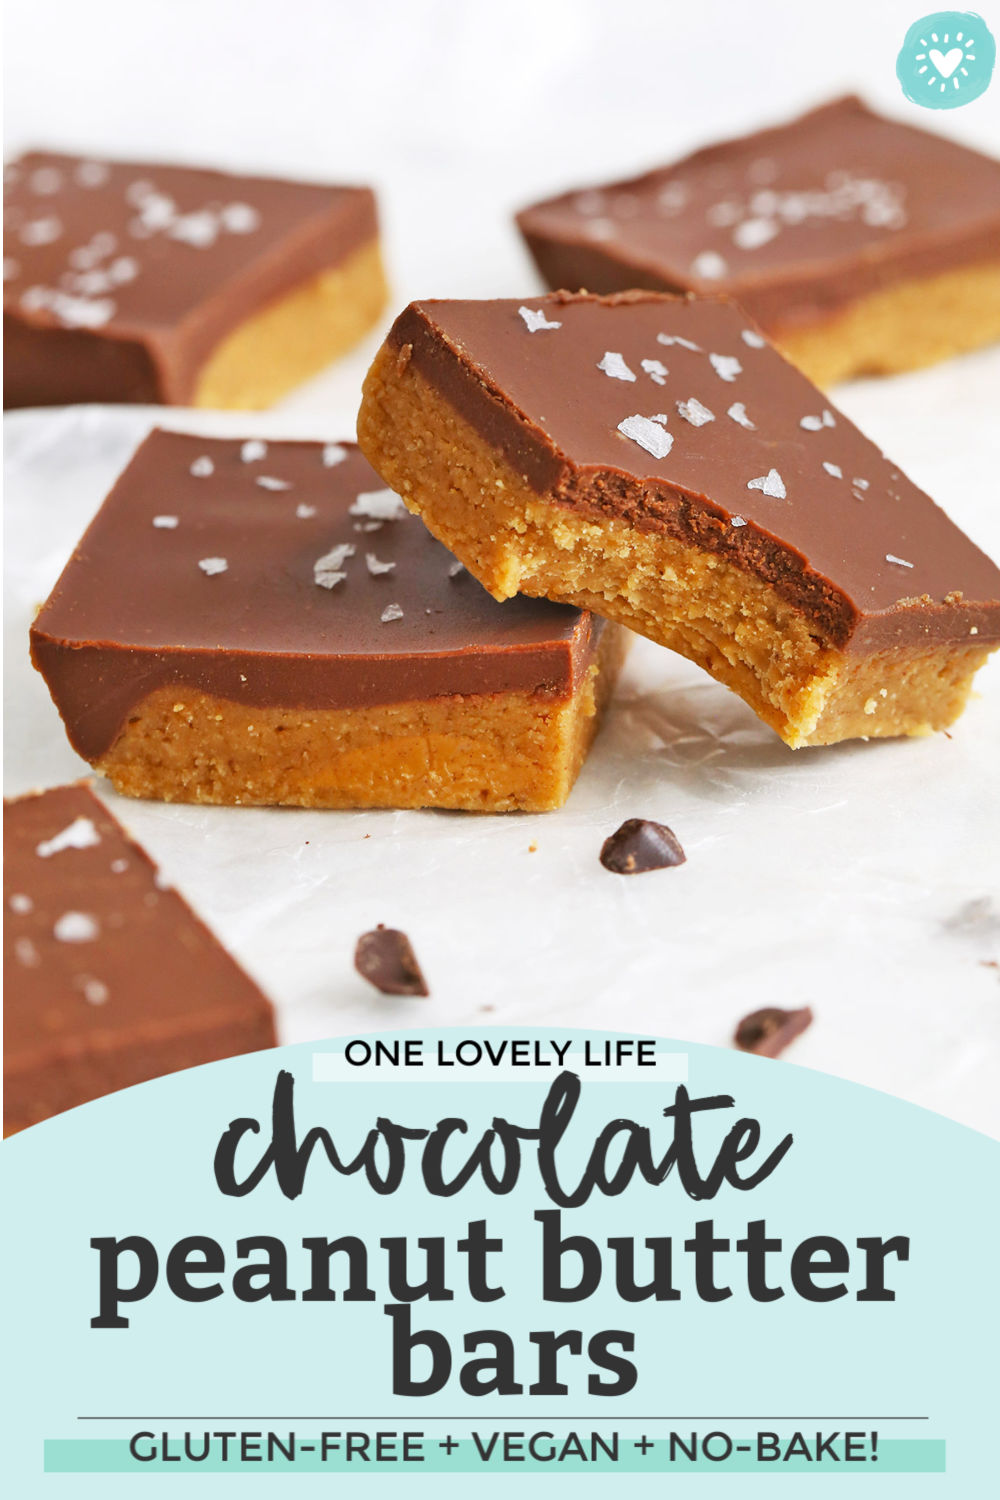 Healthy No Bake Chocolate Peanut Butter Bars from One Lovely Life